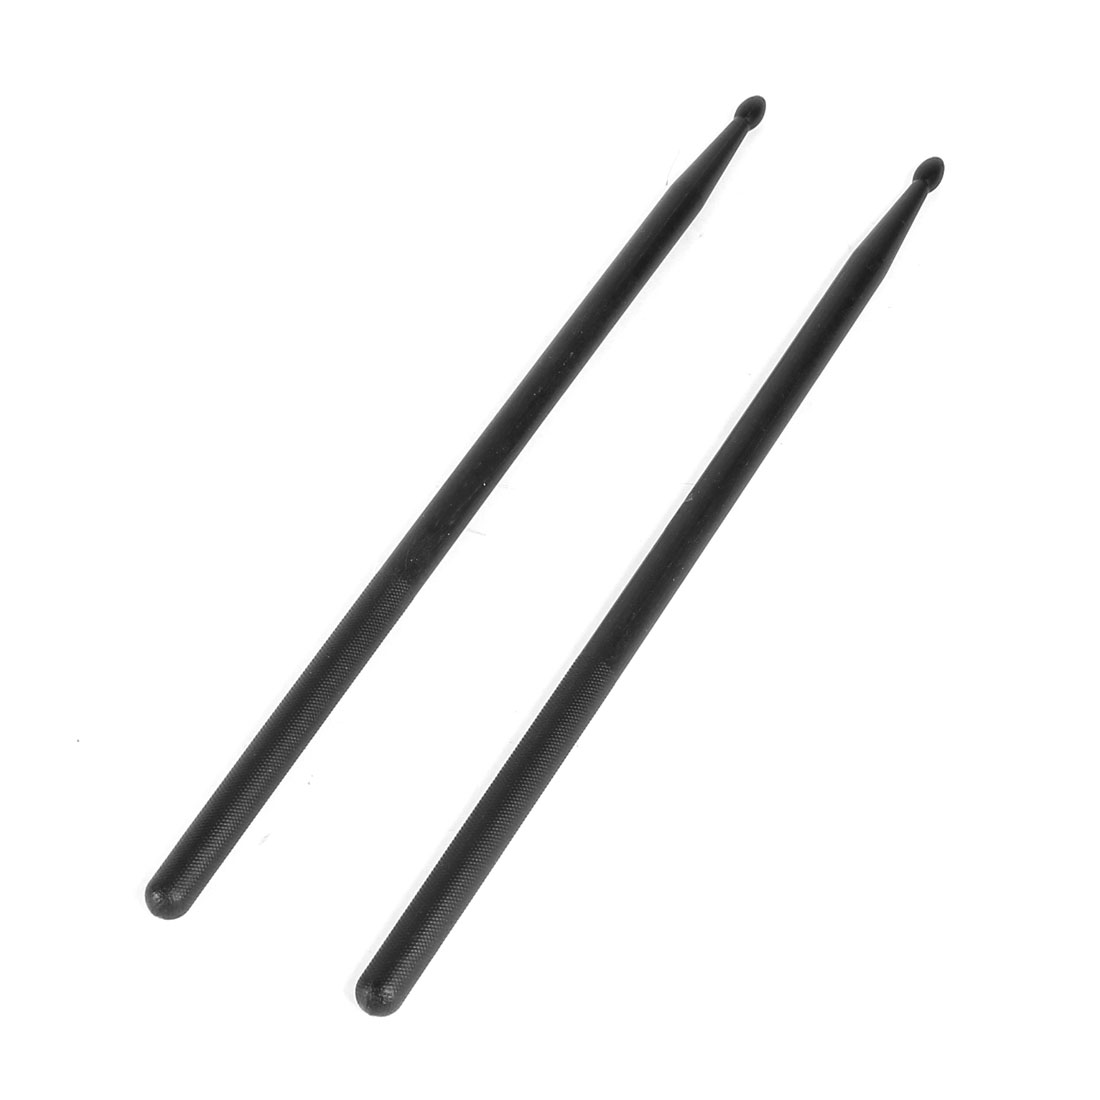 1 Pair 5A Nonslip Grip Music Band Plastic Drum Sticks Drumsticks